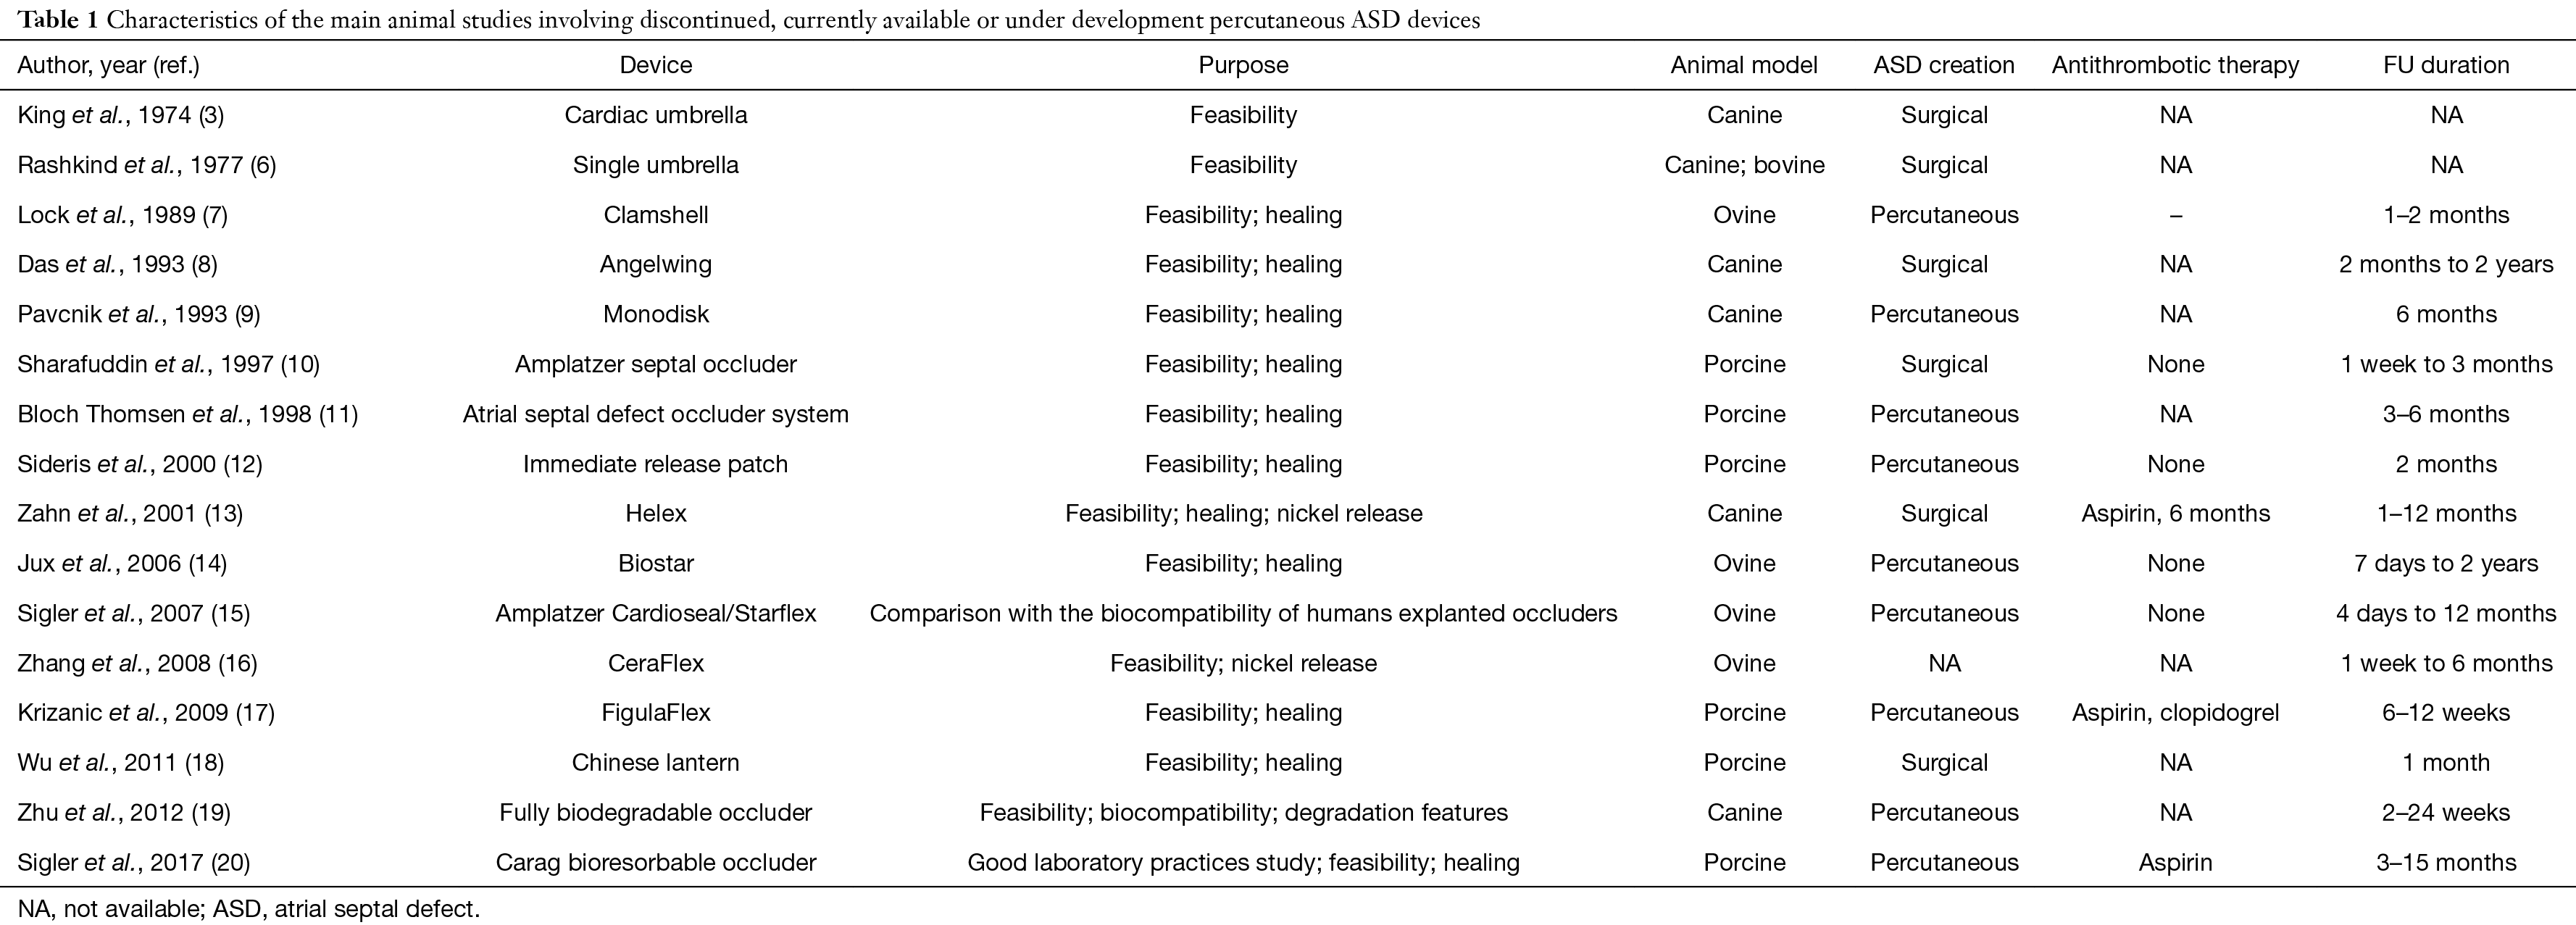 Role of animal models for percutaneous atrial septal defect